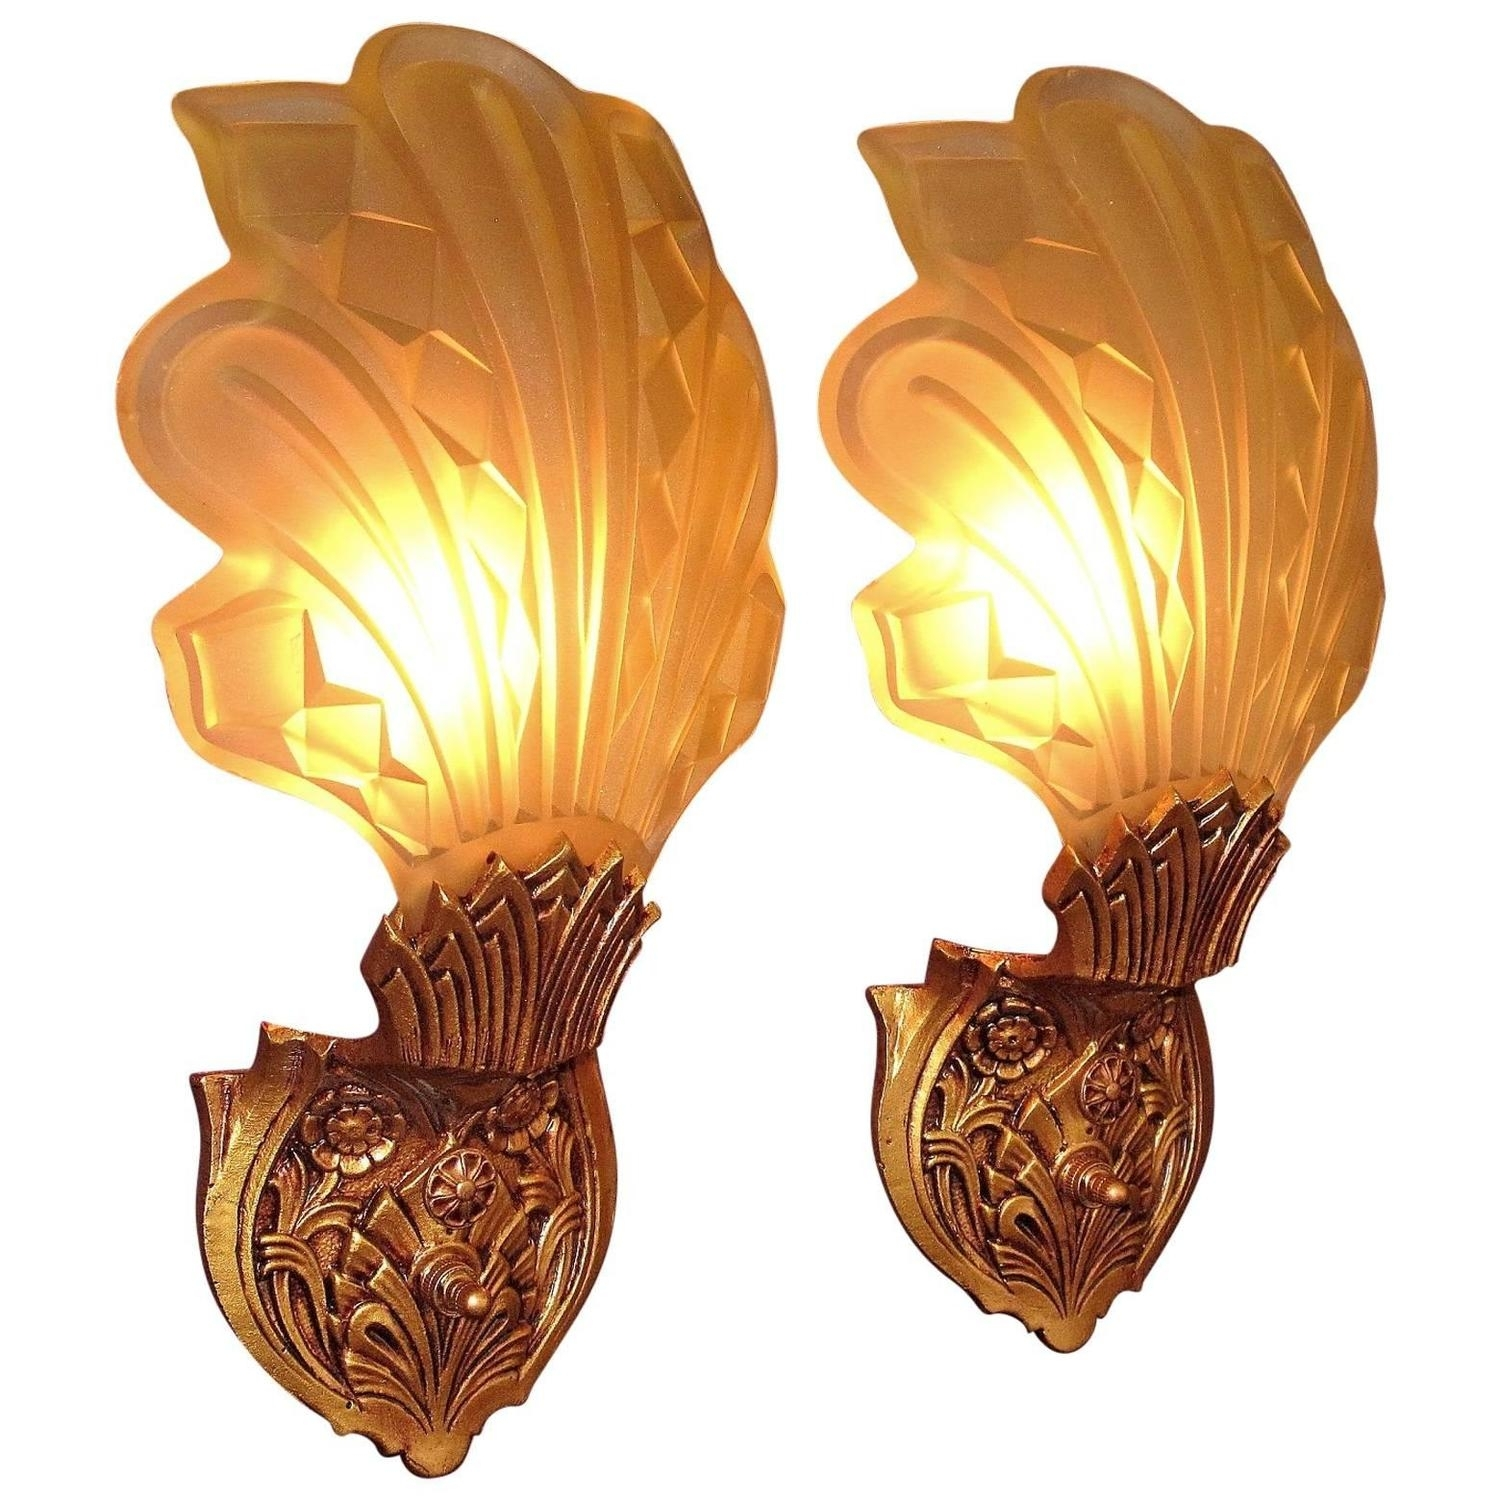 Pair Of Art Deco Bent Stained Glass Theatre Wall Sconces Floral pertaining to Art Deco Wall Sconces (Image 14 of 20)